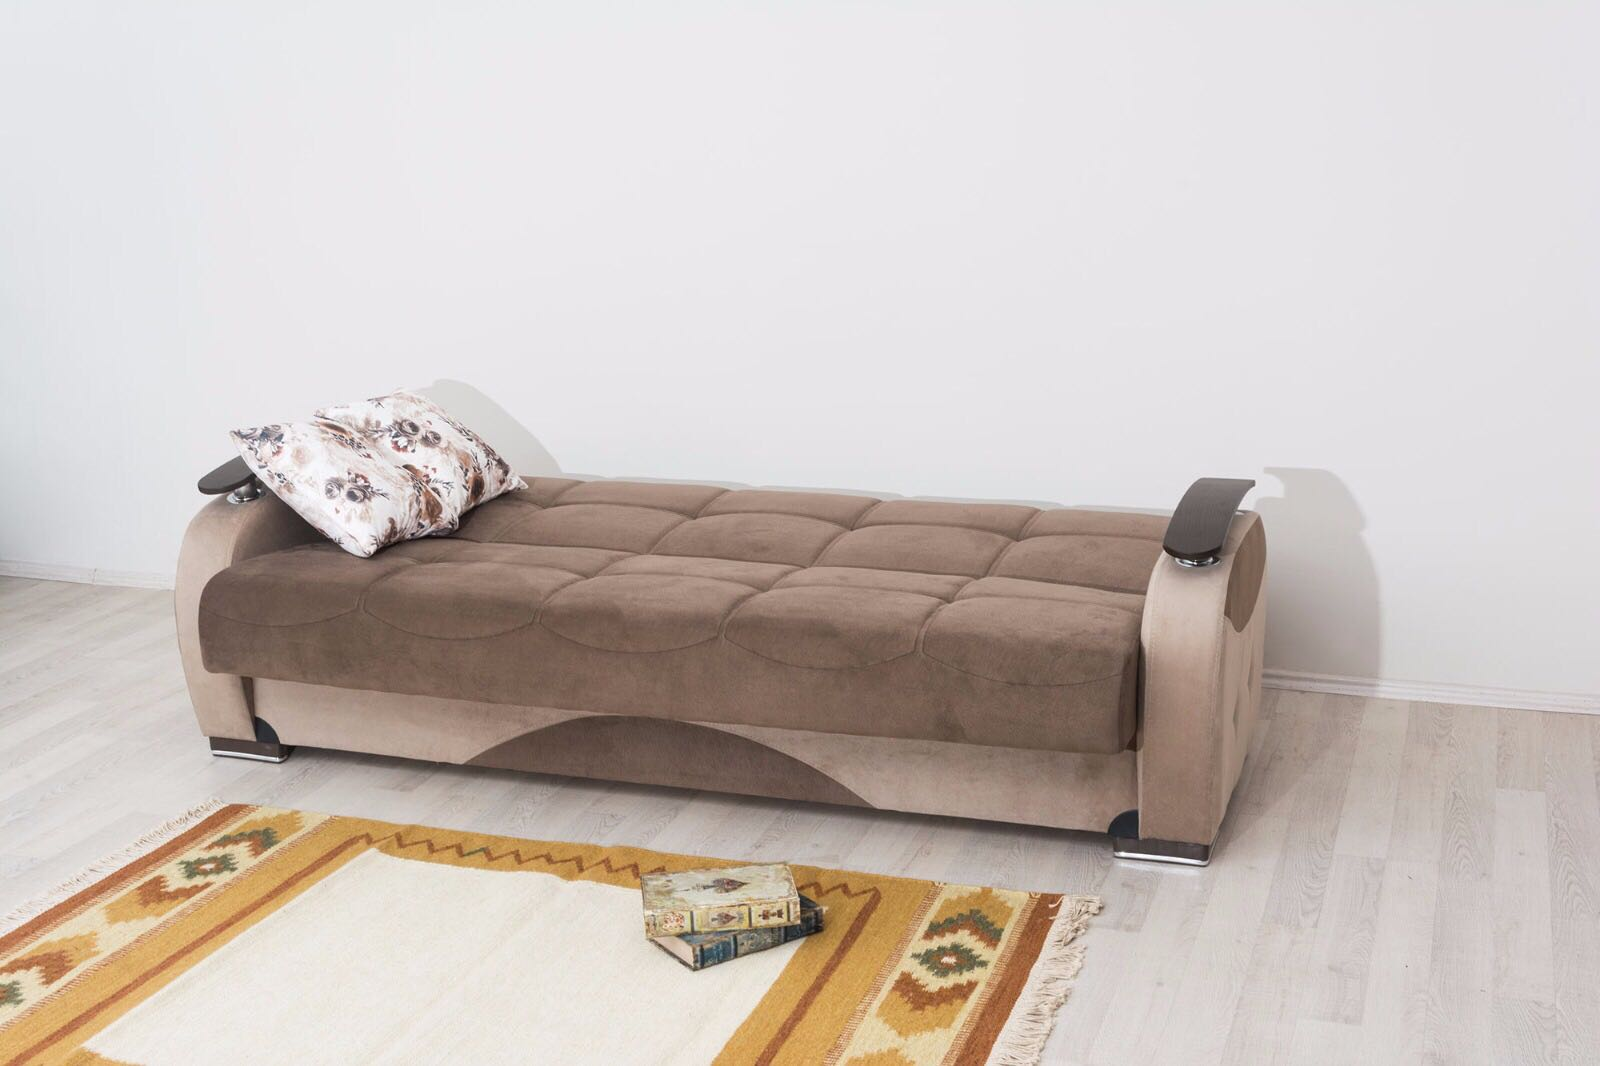 Superb Ams Furniture Shop Beds Wardrobes Sofas Home Decor And Much More Interior Design Ideas Inamawefileorg